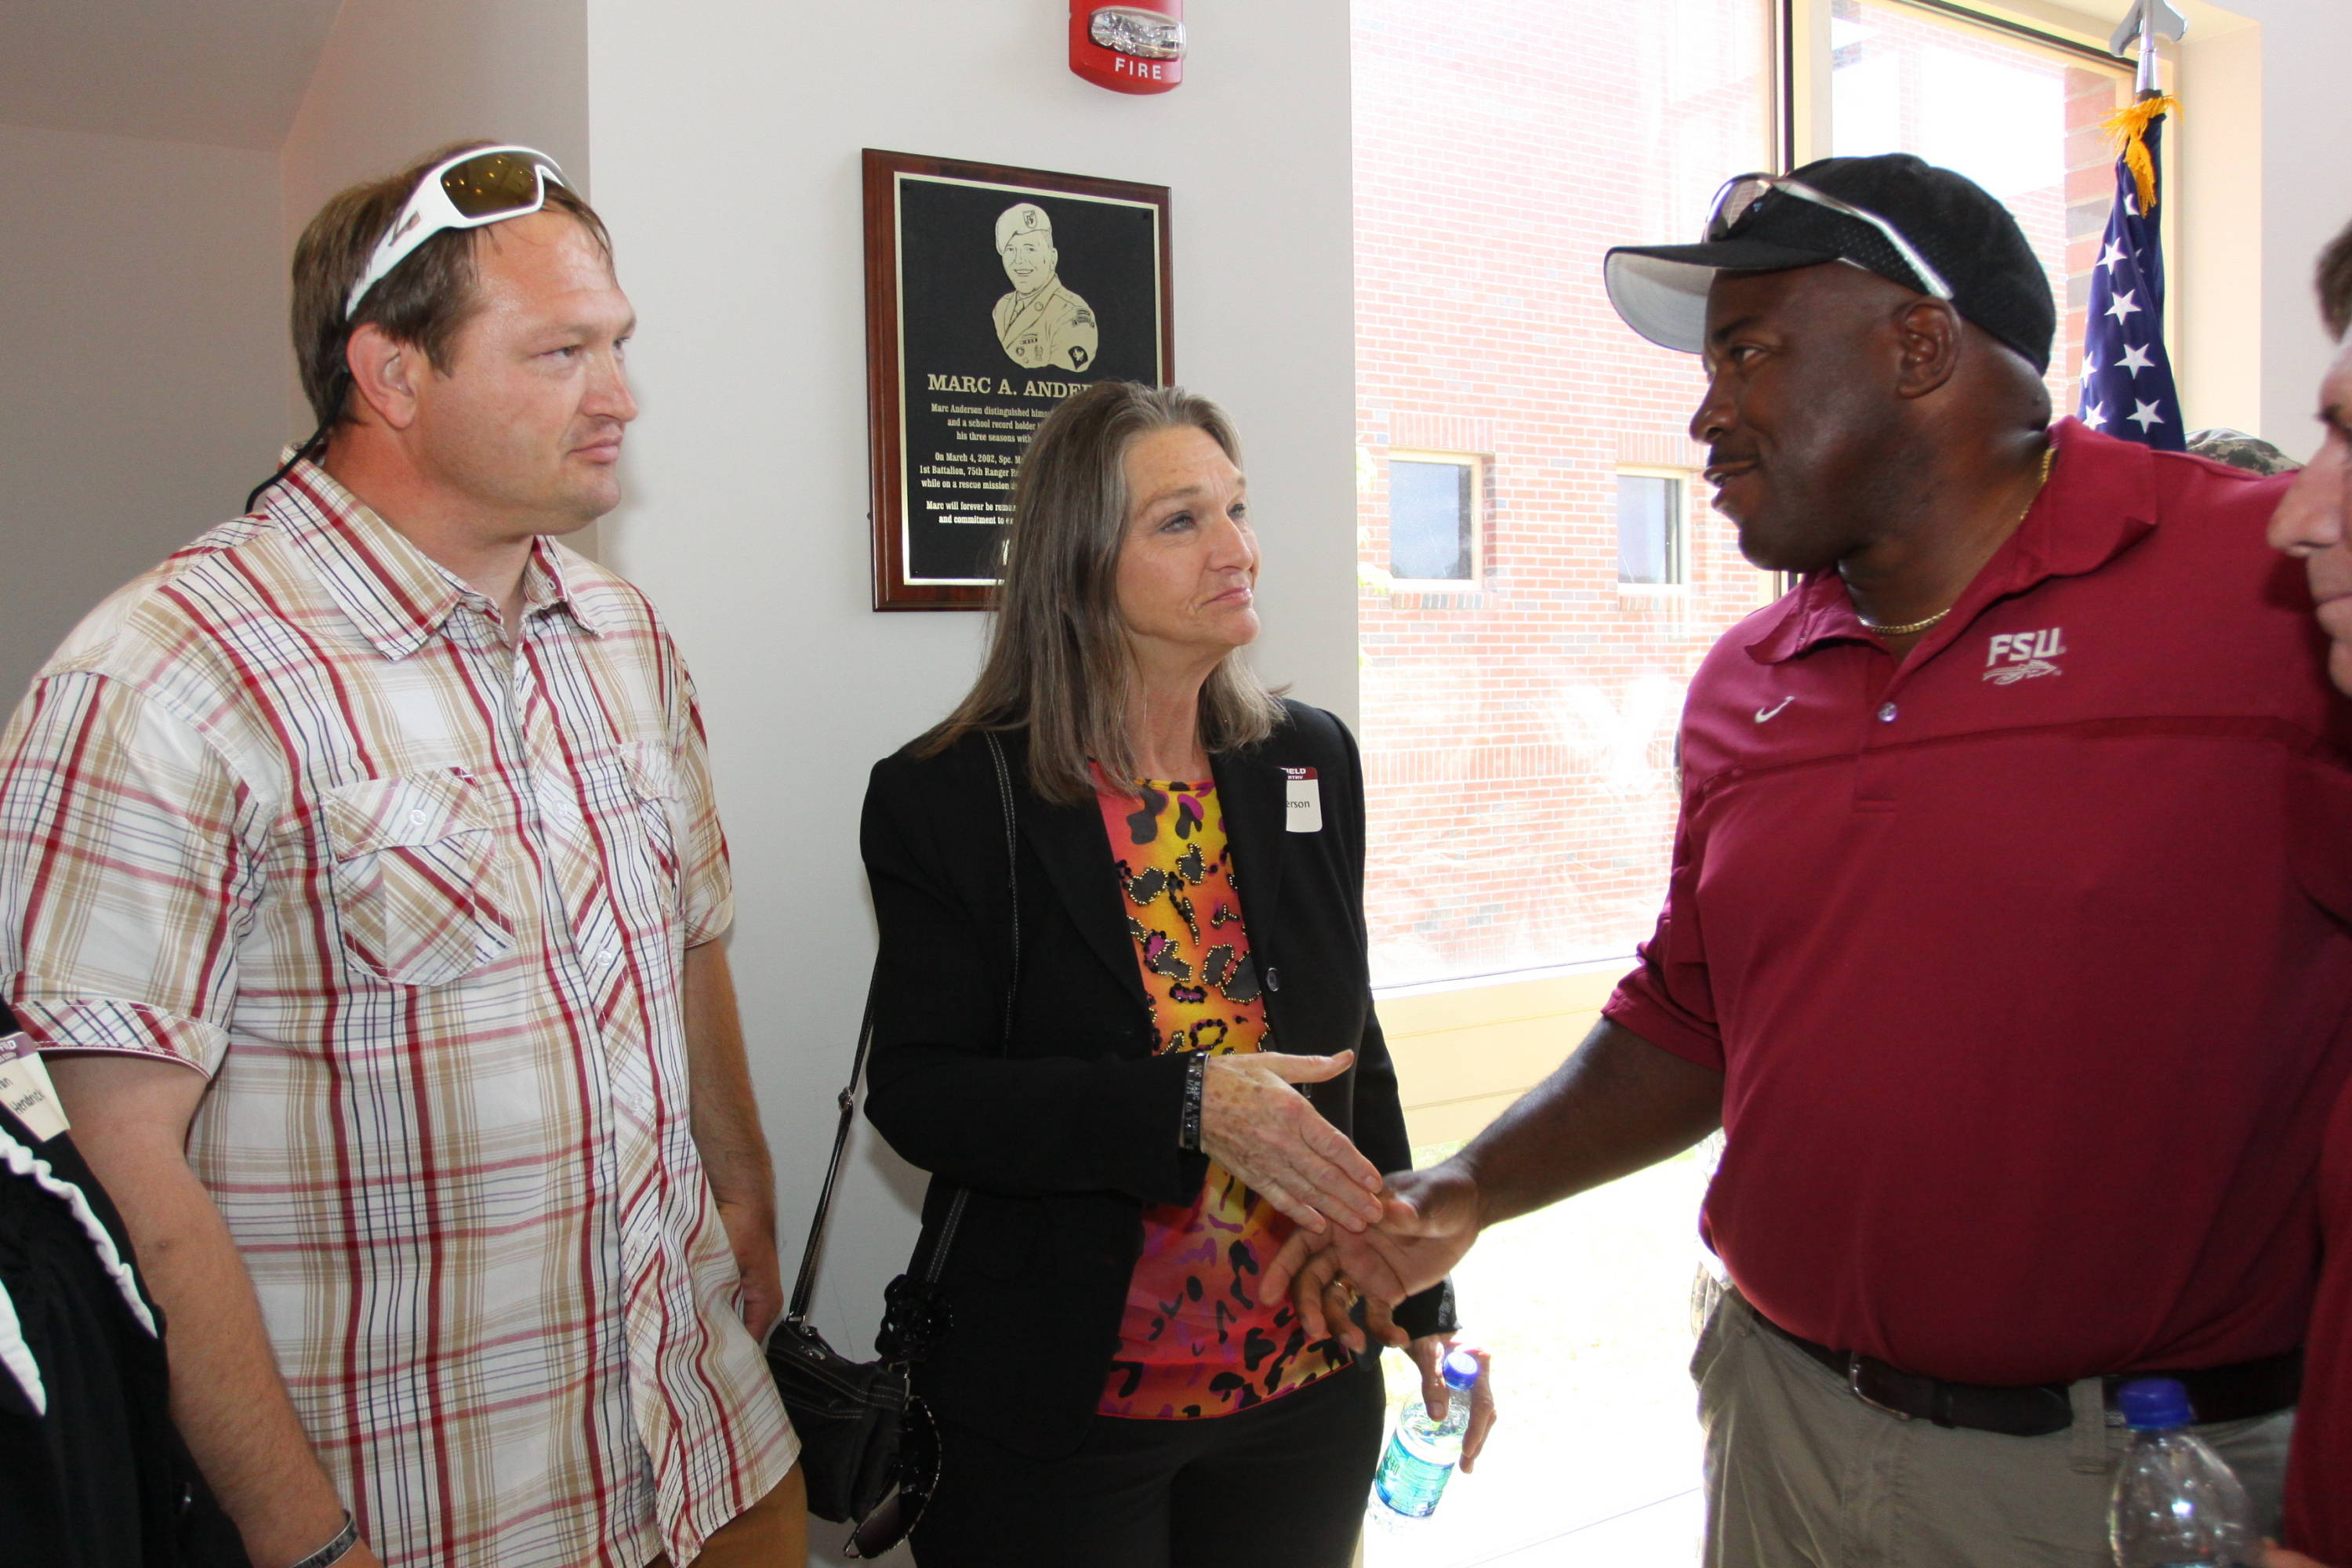 FSU Associate Head Coach Harlis Meaders, who was Marc Anderson's throws coach during the 1995 season with the Seminoles, greets Judy Anderson and John Anderson.